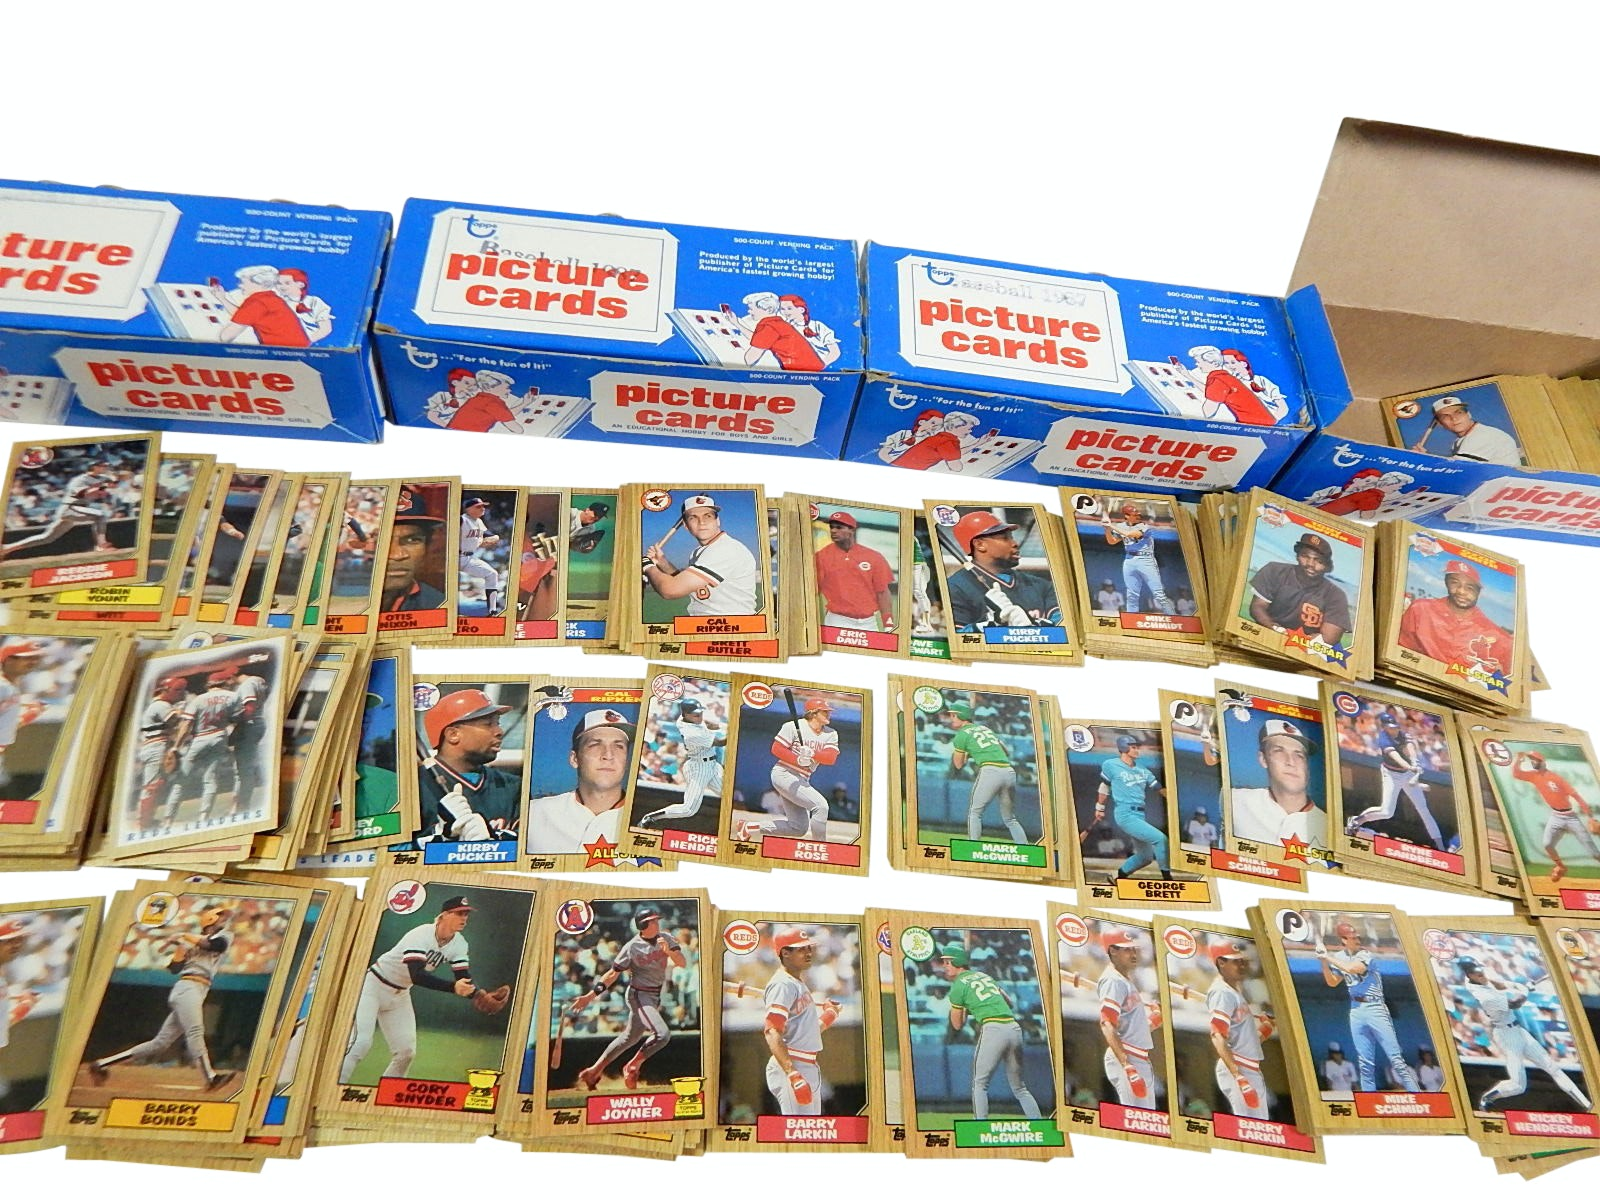 Four 1987 Topps Baseball Vending Boxes with Rookies and Stars